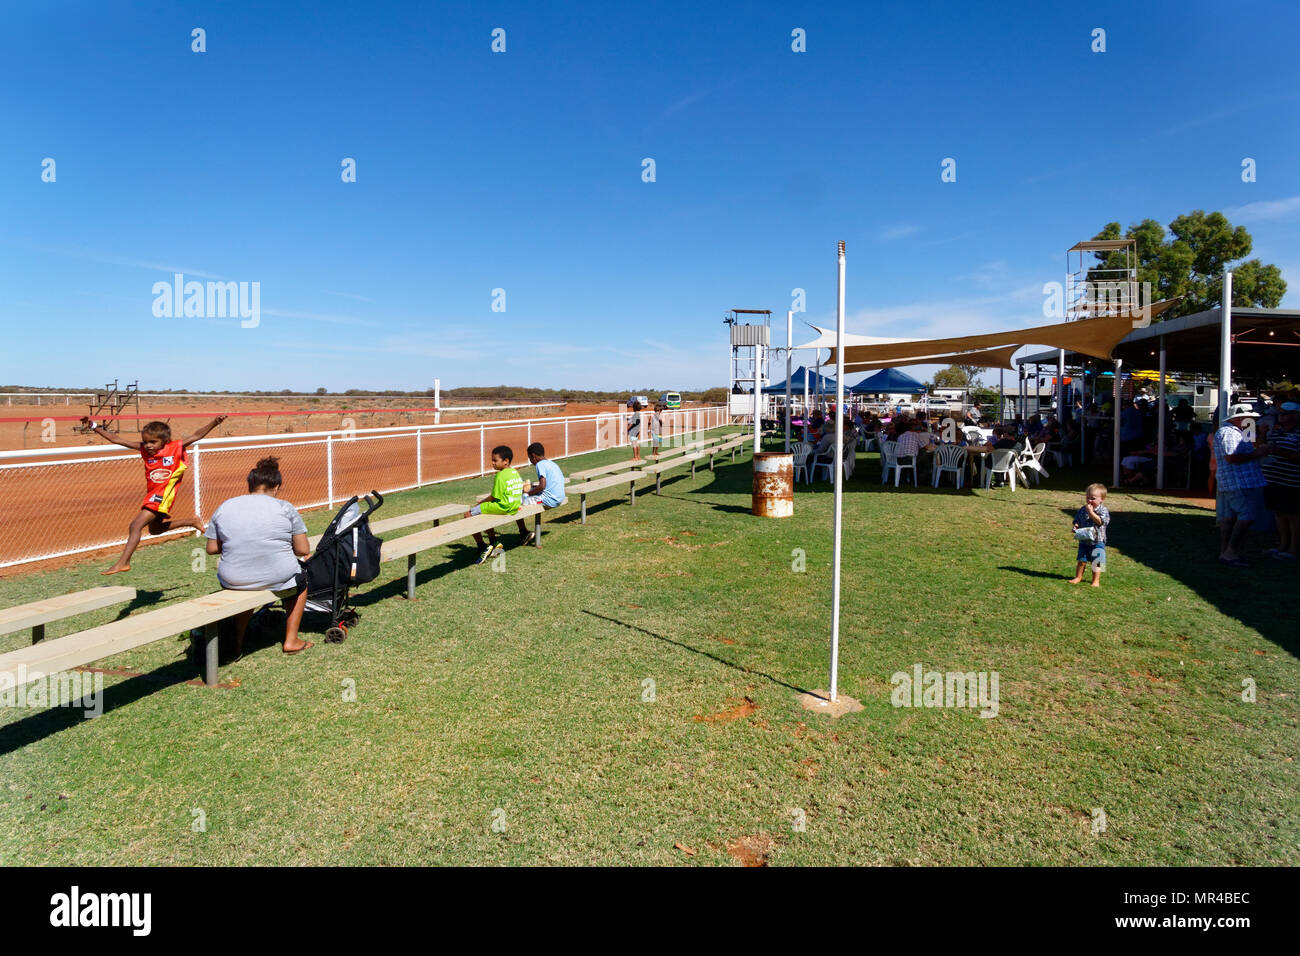 Aboriginal children at the Mount Magnet horse race course, Mt Magnet, Eastern Goldfields, Western Australia - Stock Image